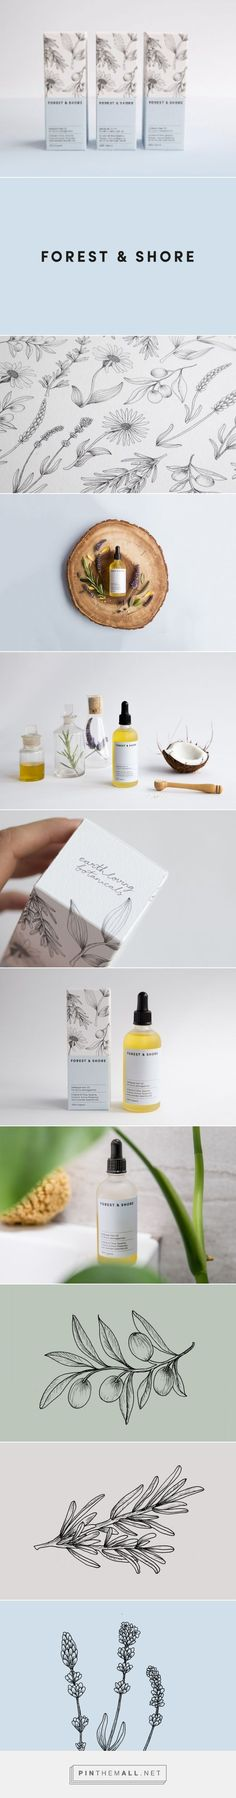 Forest & Shore by Claire Hartley on Packaging of the World - Creative Package Design Gallery - created on 2017-09-11 10:52:09